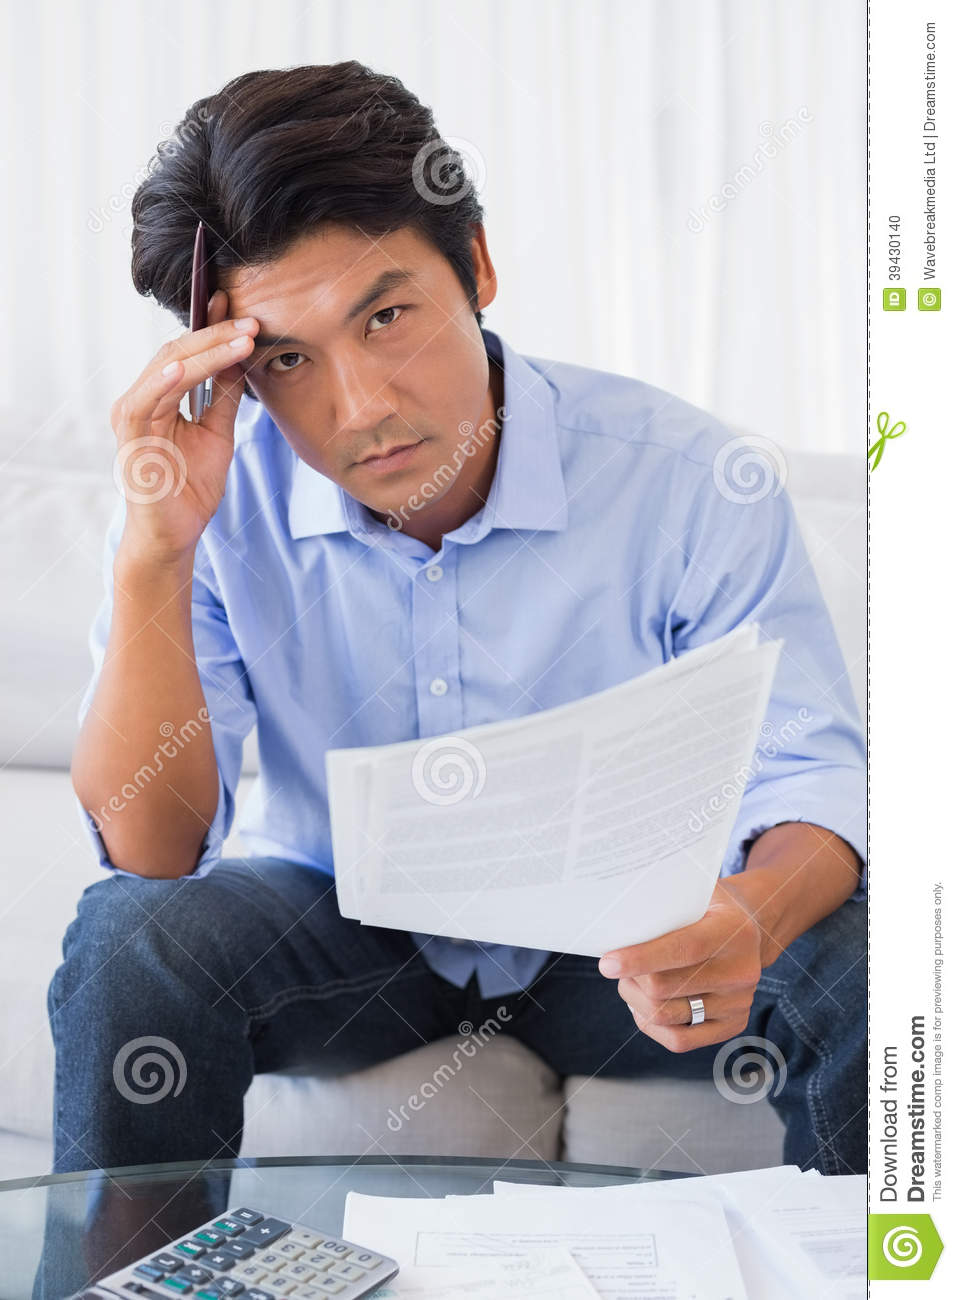 Man Sitting On Couch Working Out His Finances Stock Photo